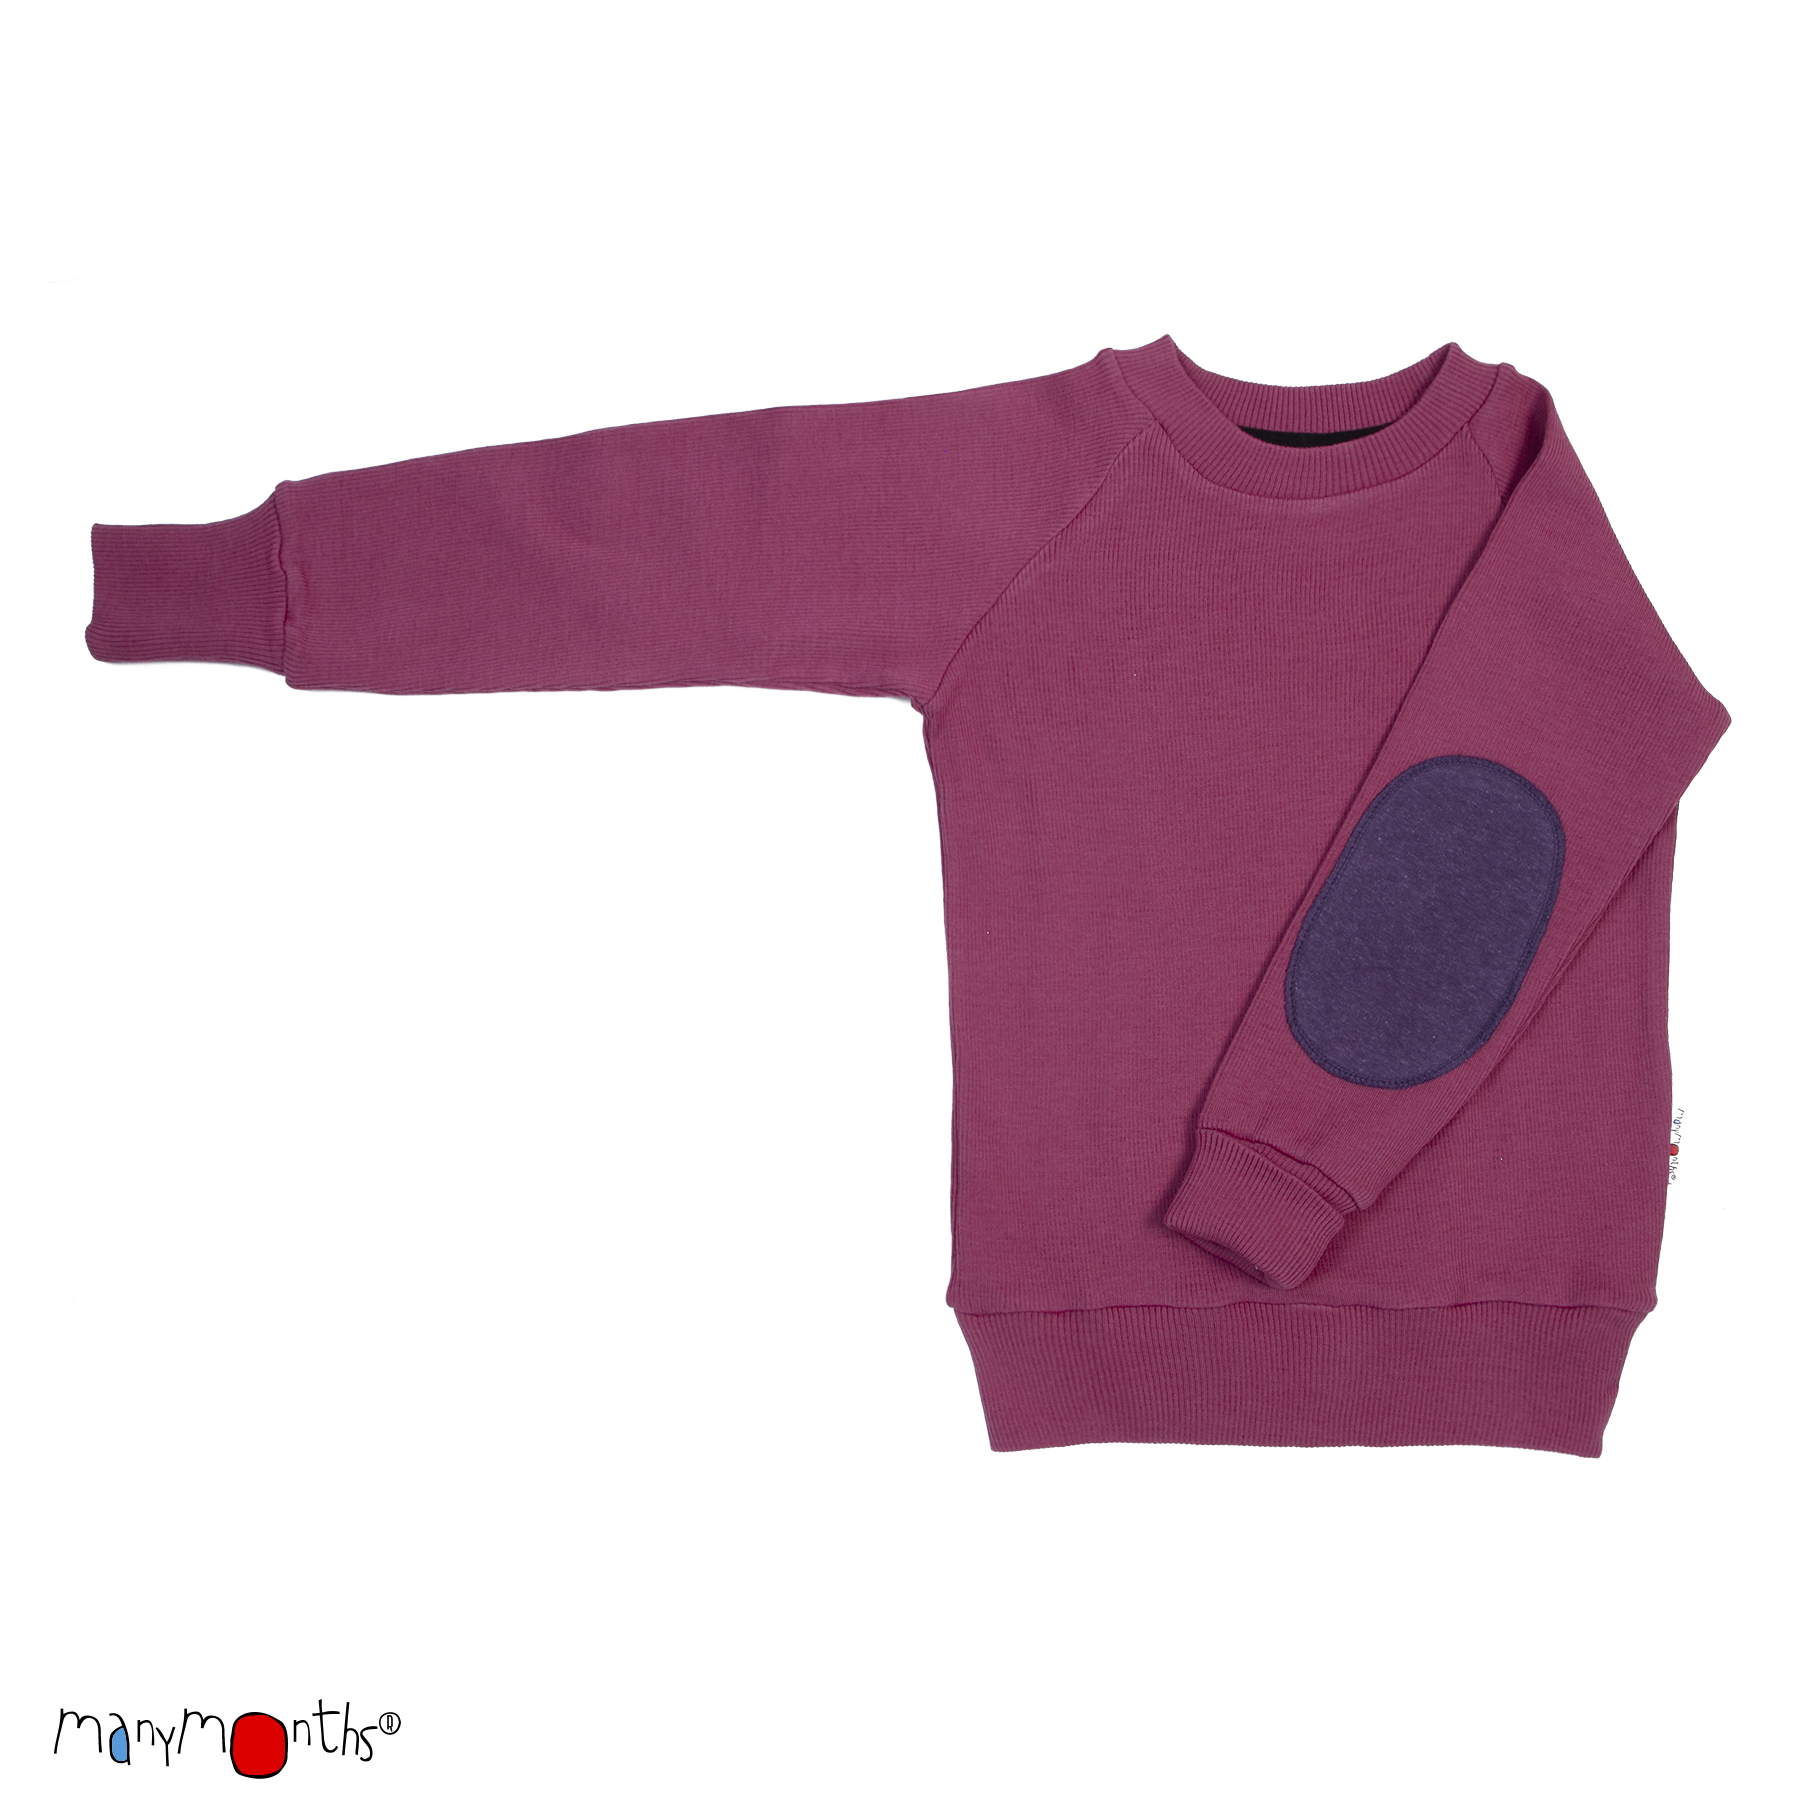 ManyMonths Natural Woollies Pullover with Elbow Patches